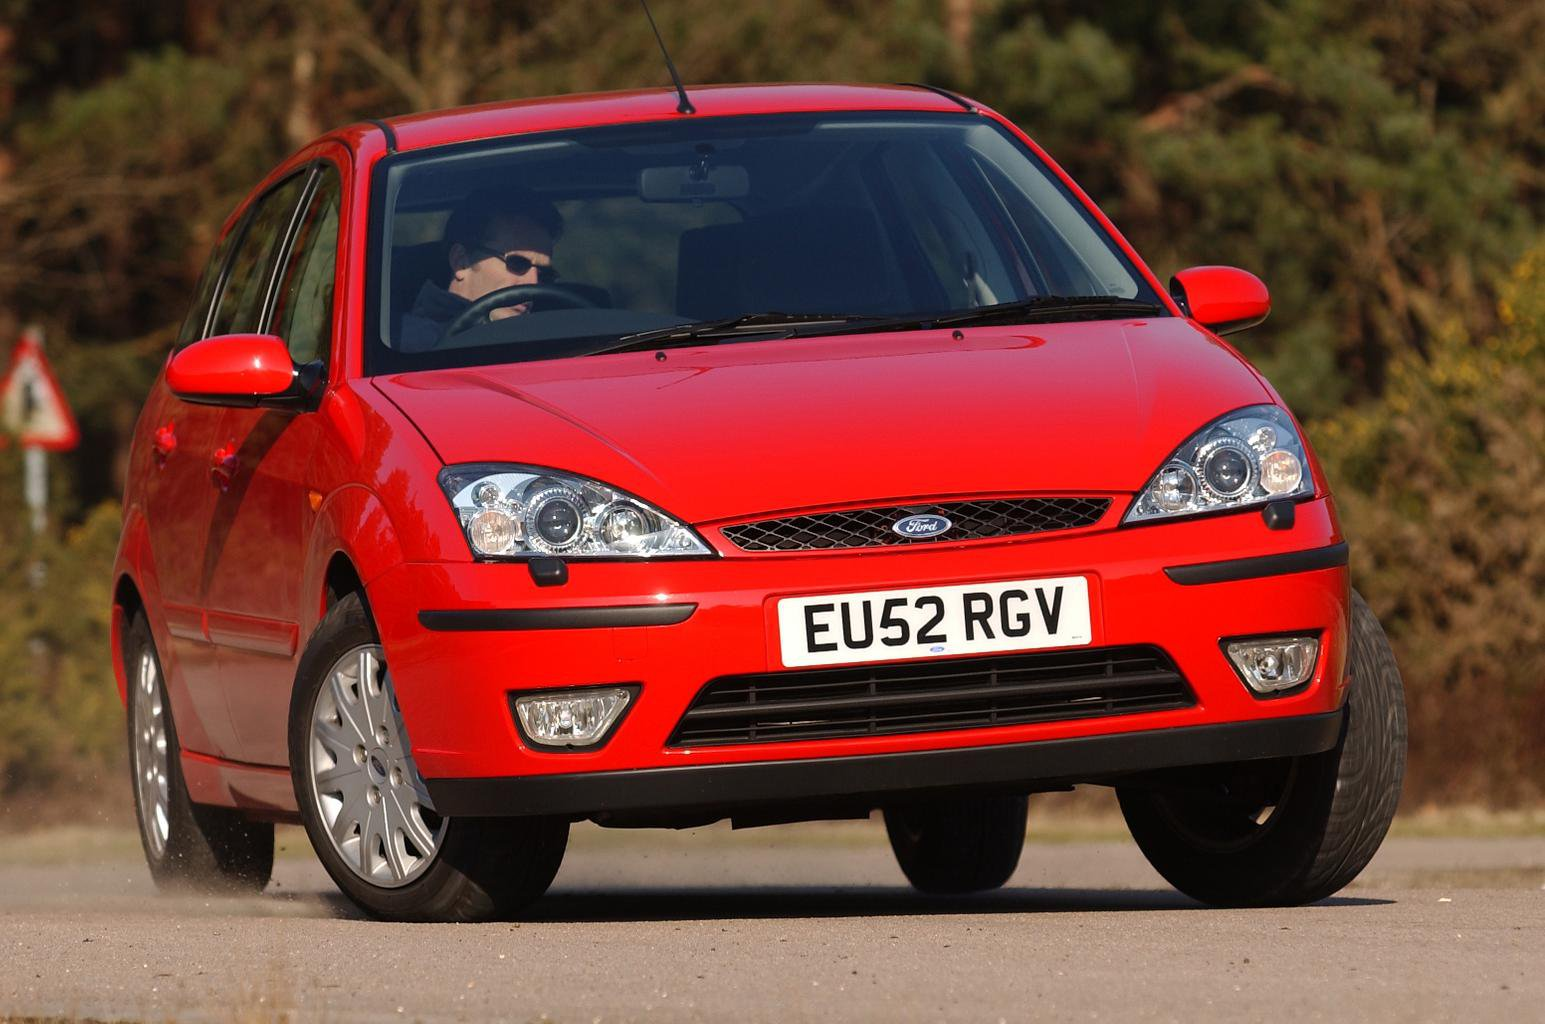 Best used family cars for less than £2,000 (and the ones to avoid)